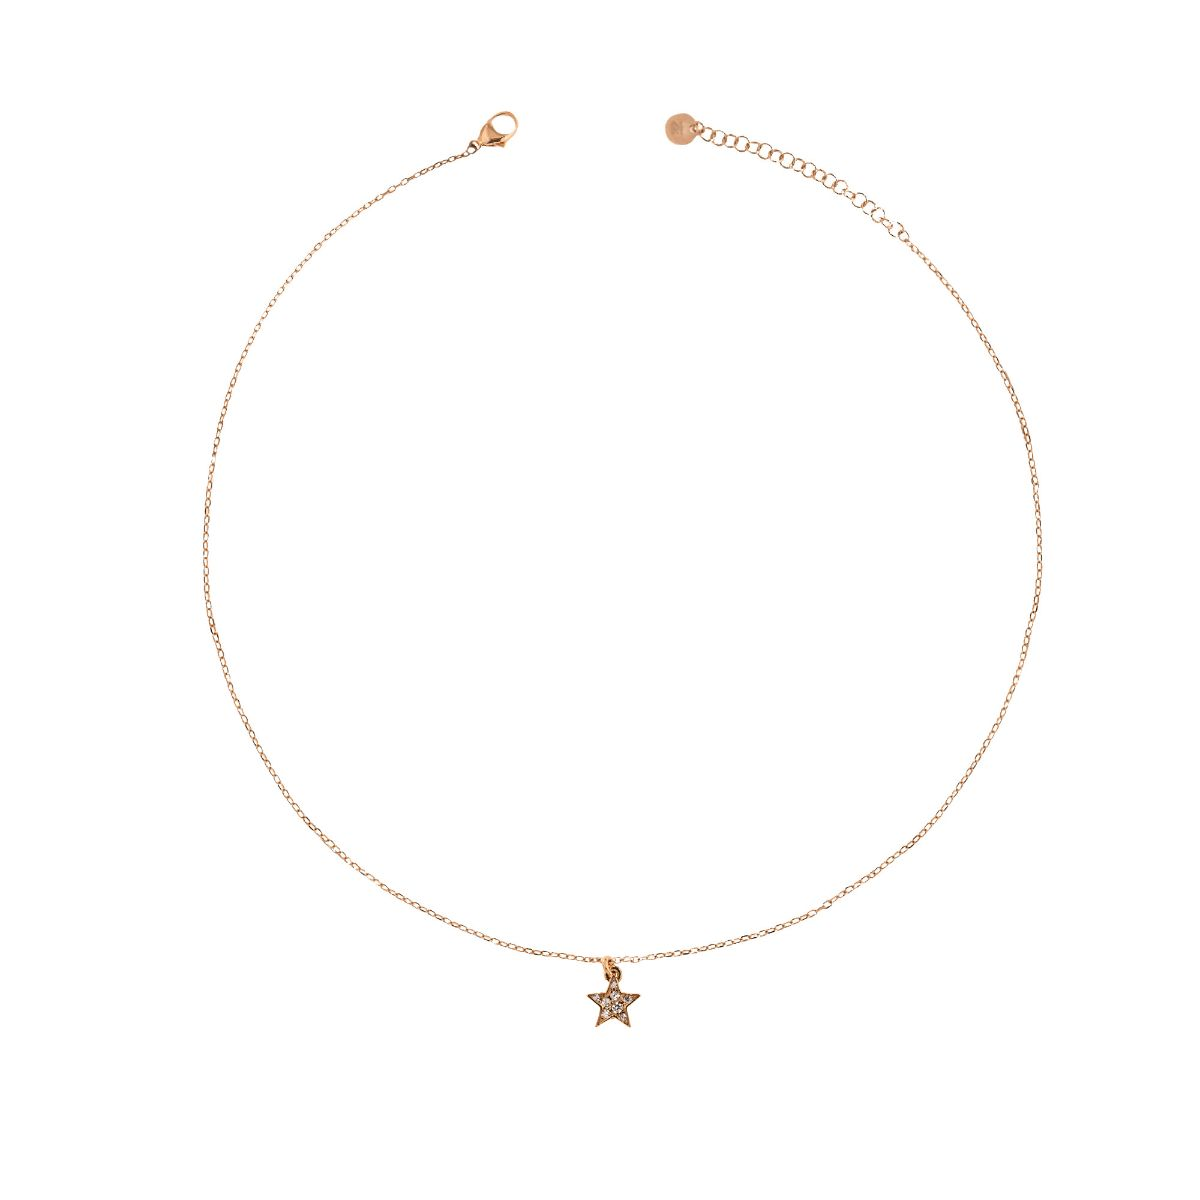 Chokers - Choker chain and star zircons - 2 | Rue des Mille